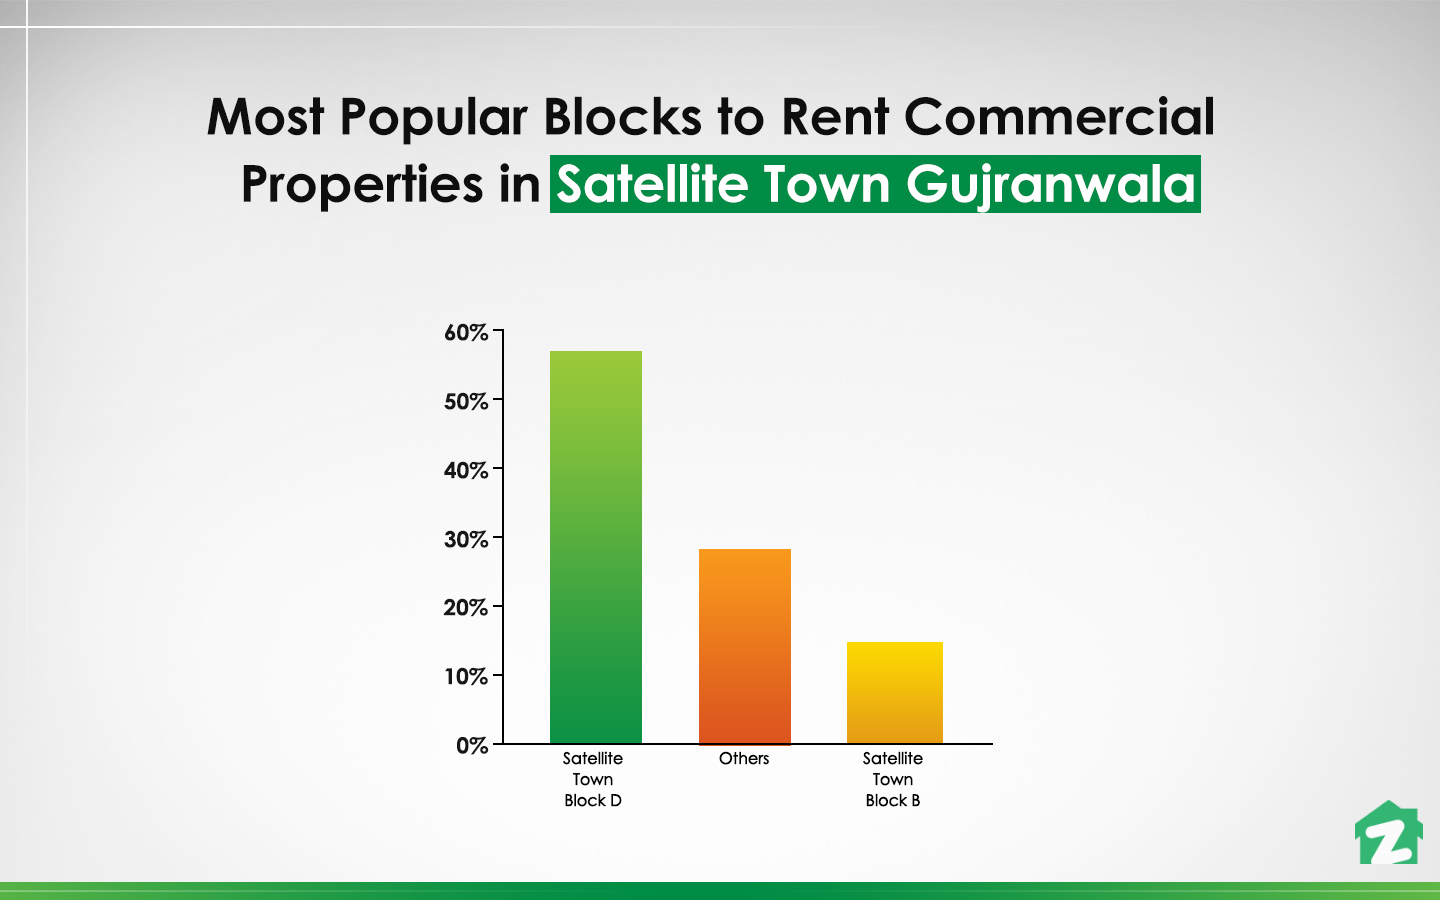 Block-D is the most popular block for renting commercial properties in Satellite Town Gujranwala